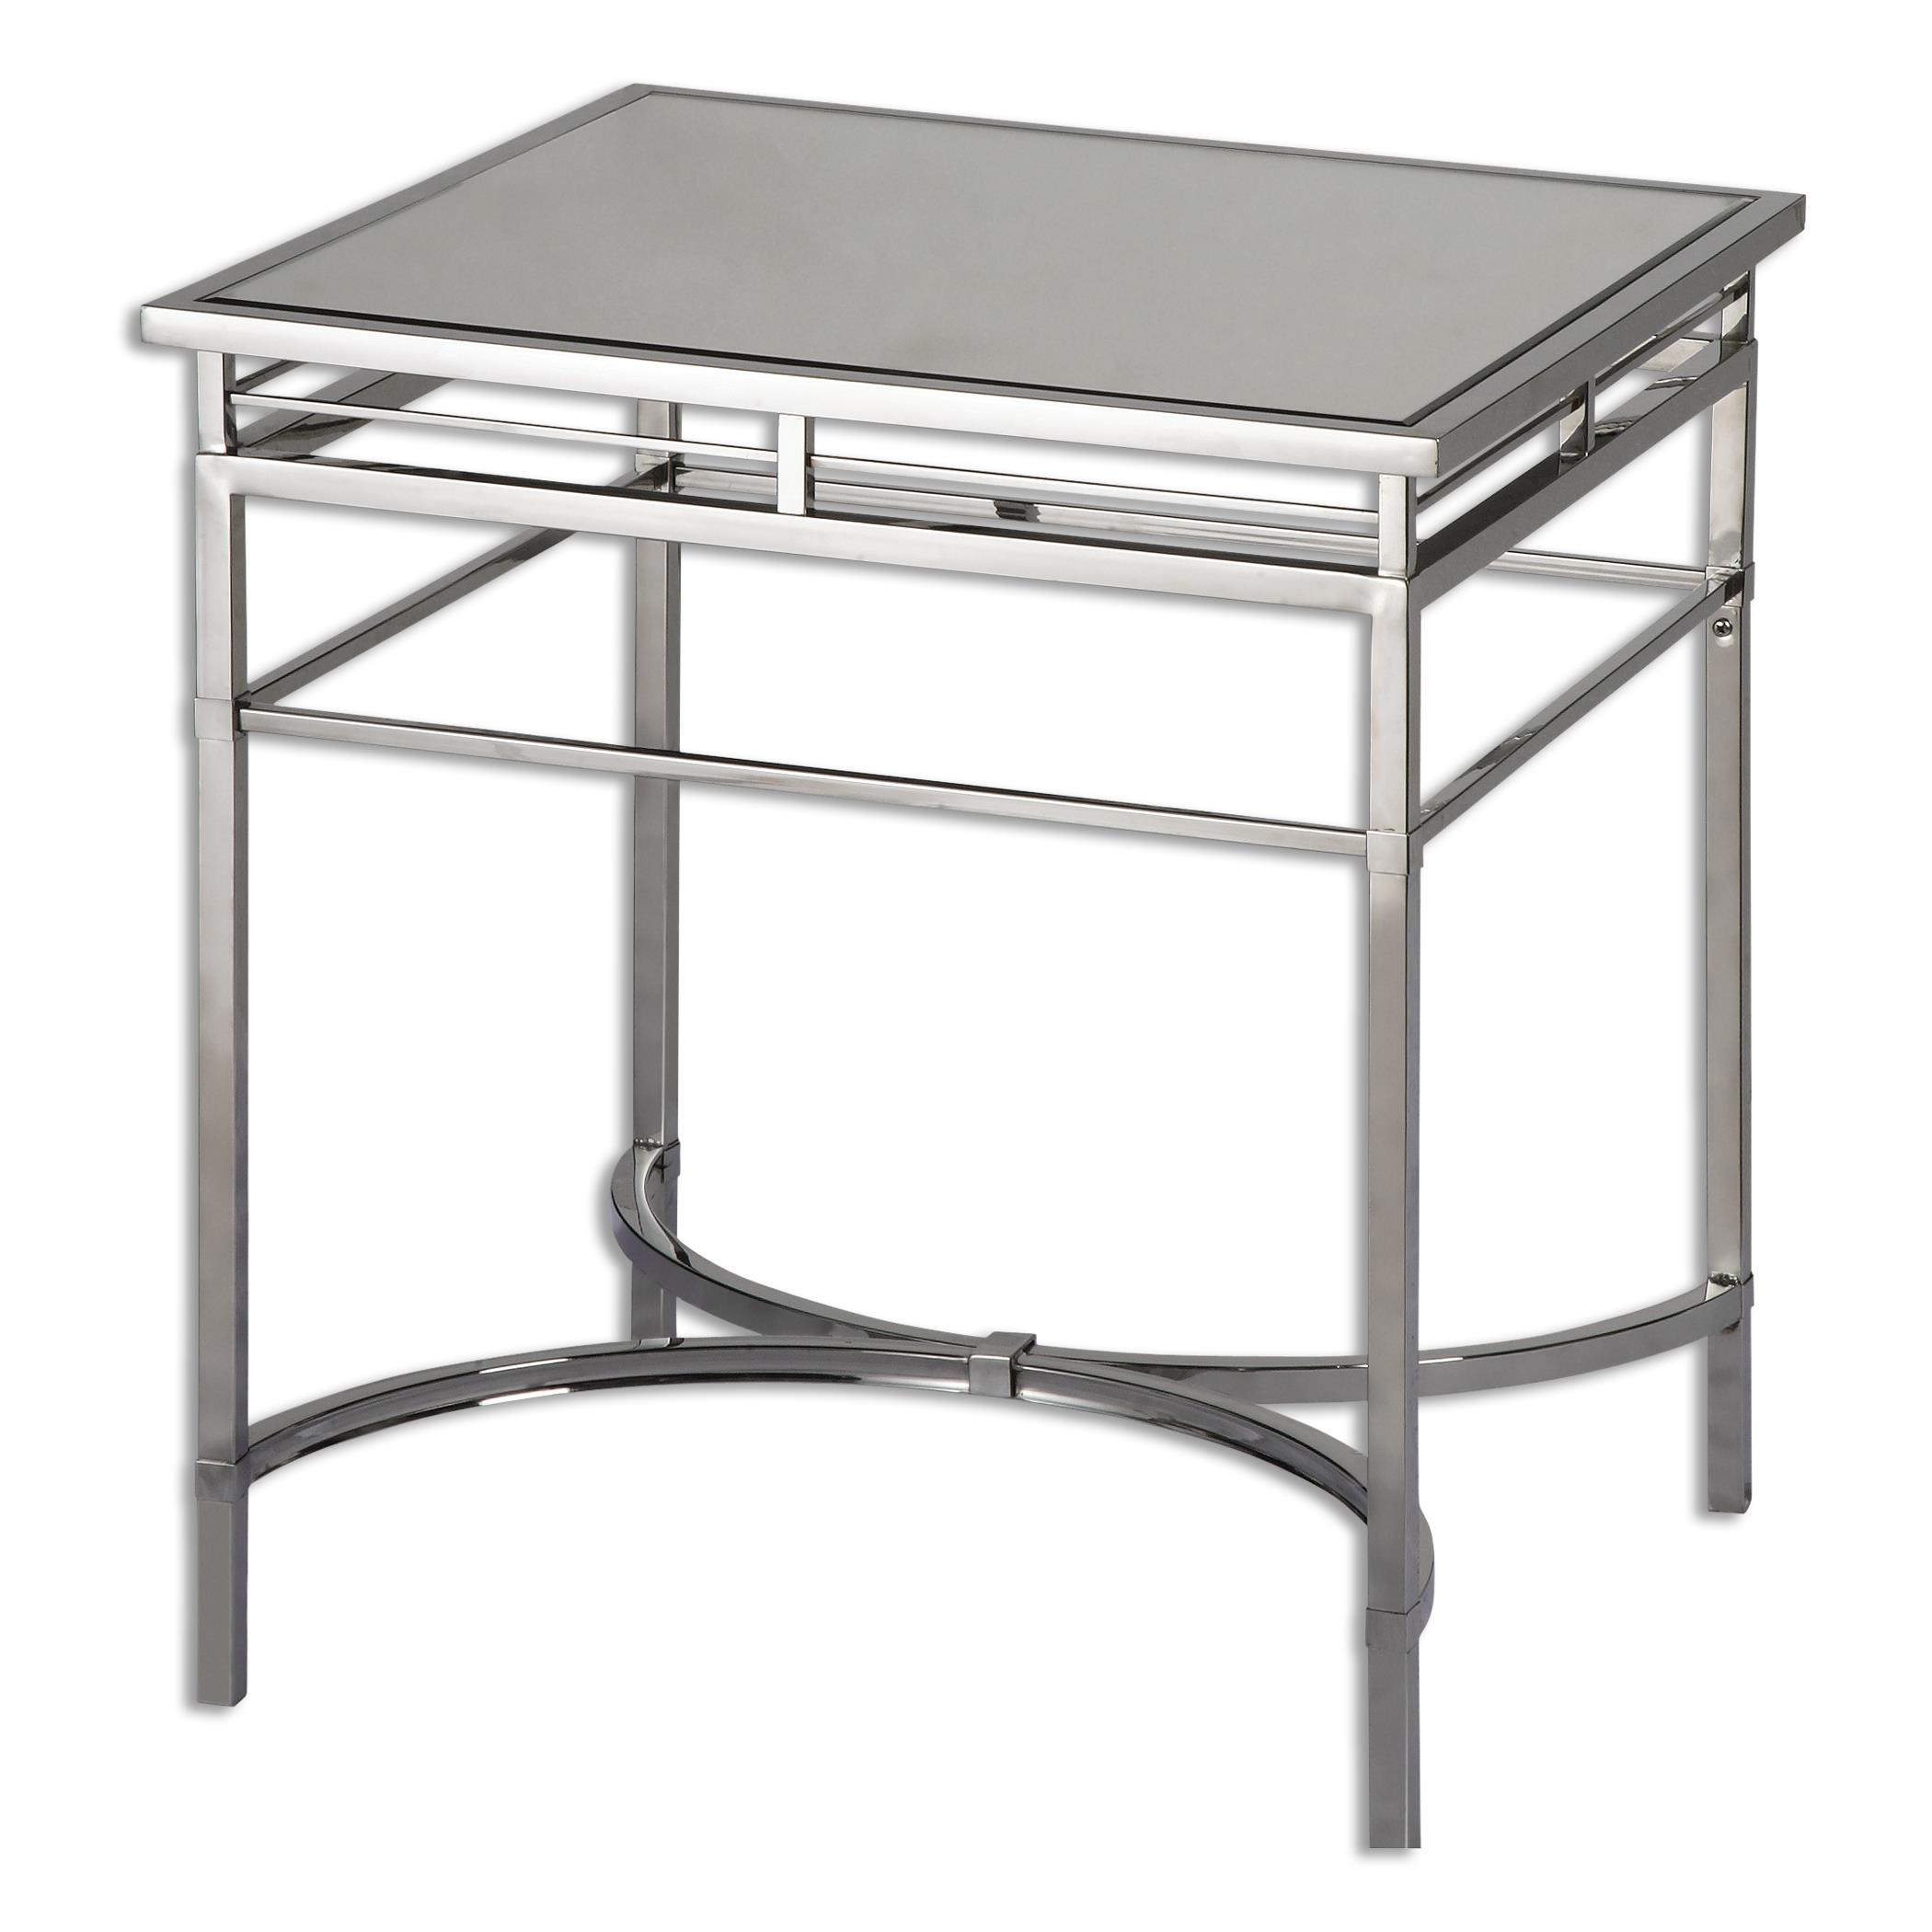 Uttermost Accent Furniture Fedro Mirrored Accent Table - Item Number: 24411